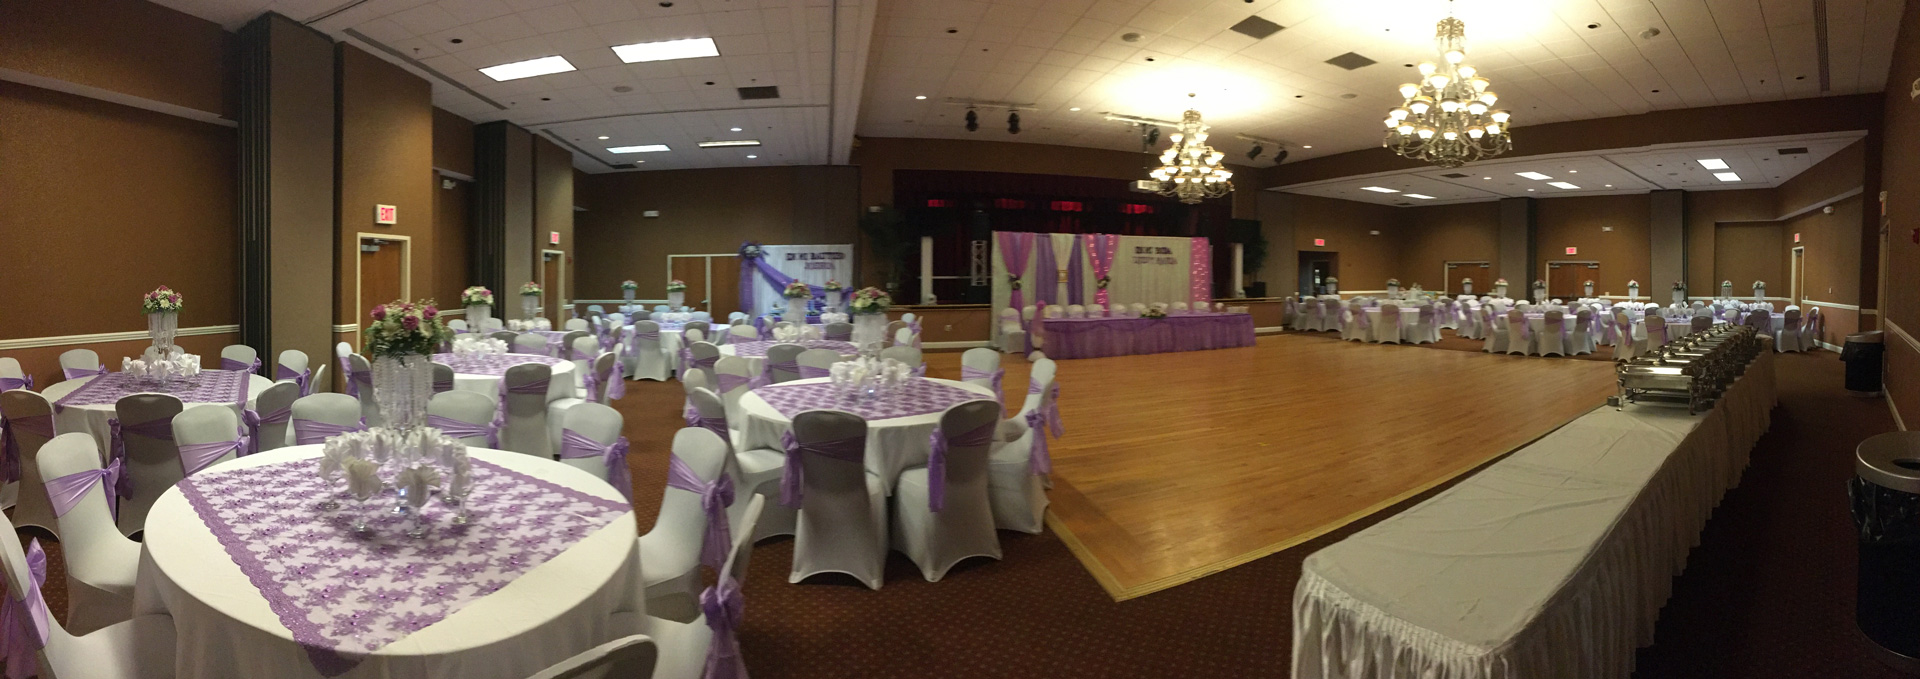 Ukrainian American Cultural Center - Main Ballroom panoramic